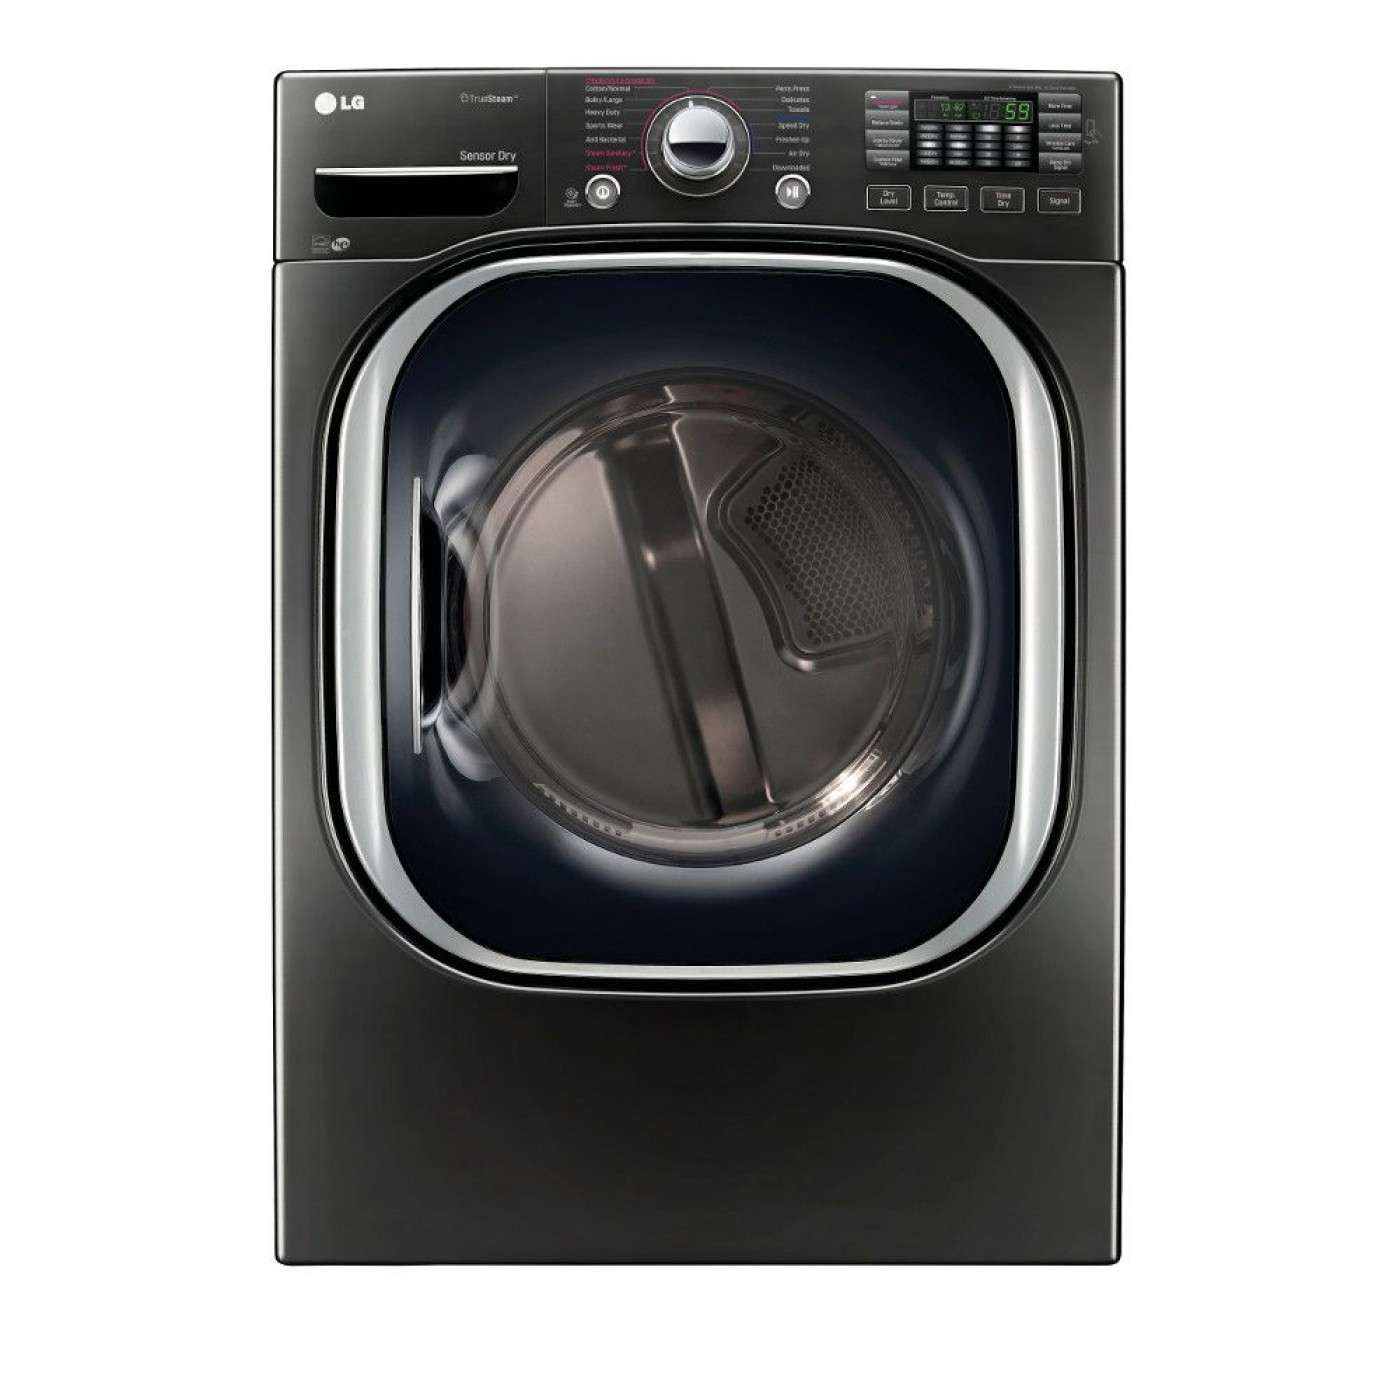 Truesteam 7 3 Cu Ft Black Stainless Steel Stackable With Steam Cycle Electric Dryer Laundry Room Storage Electric Dryers Gas Dryer